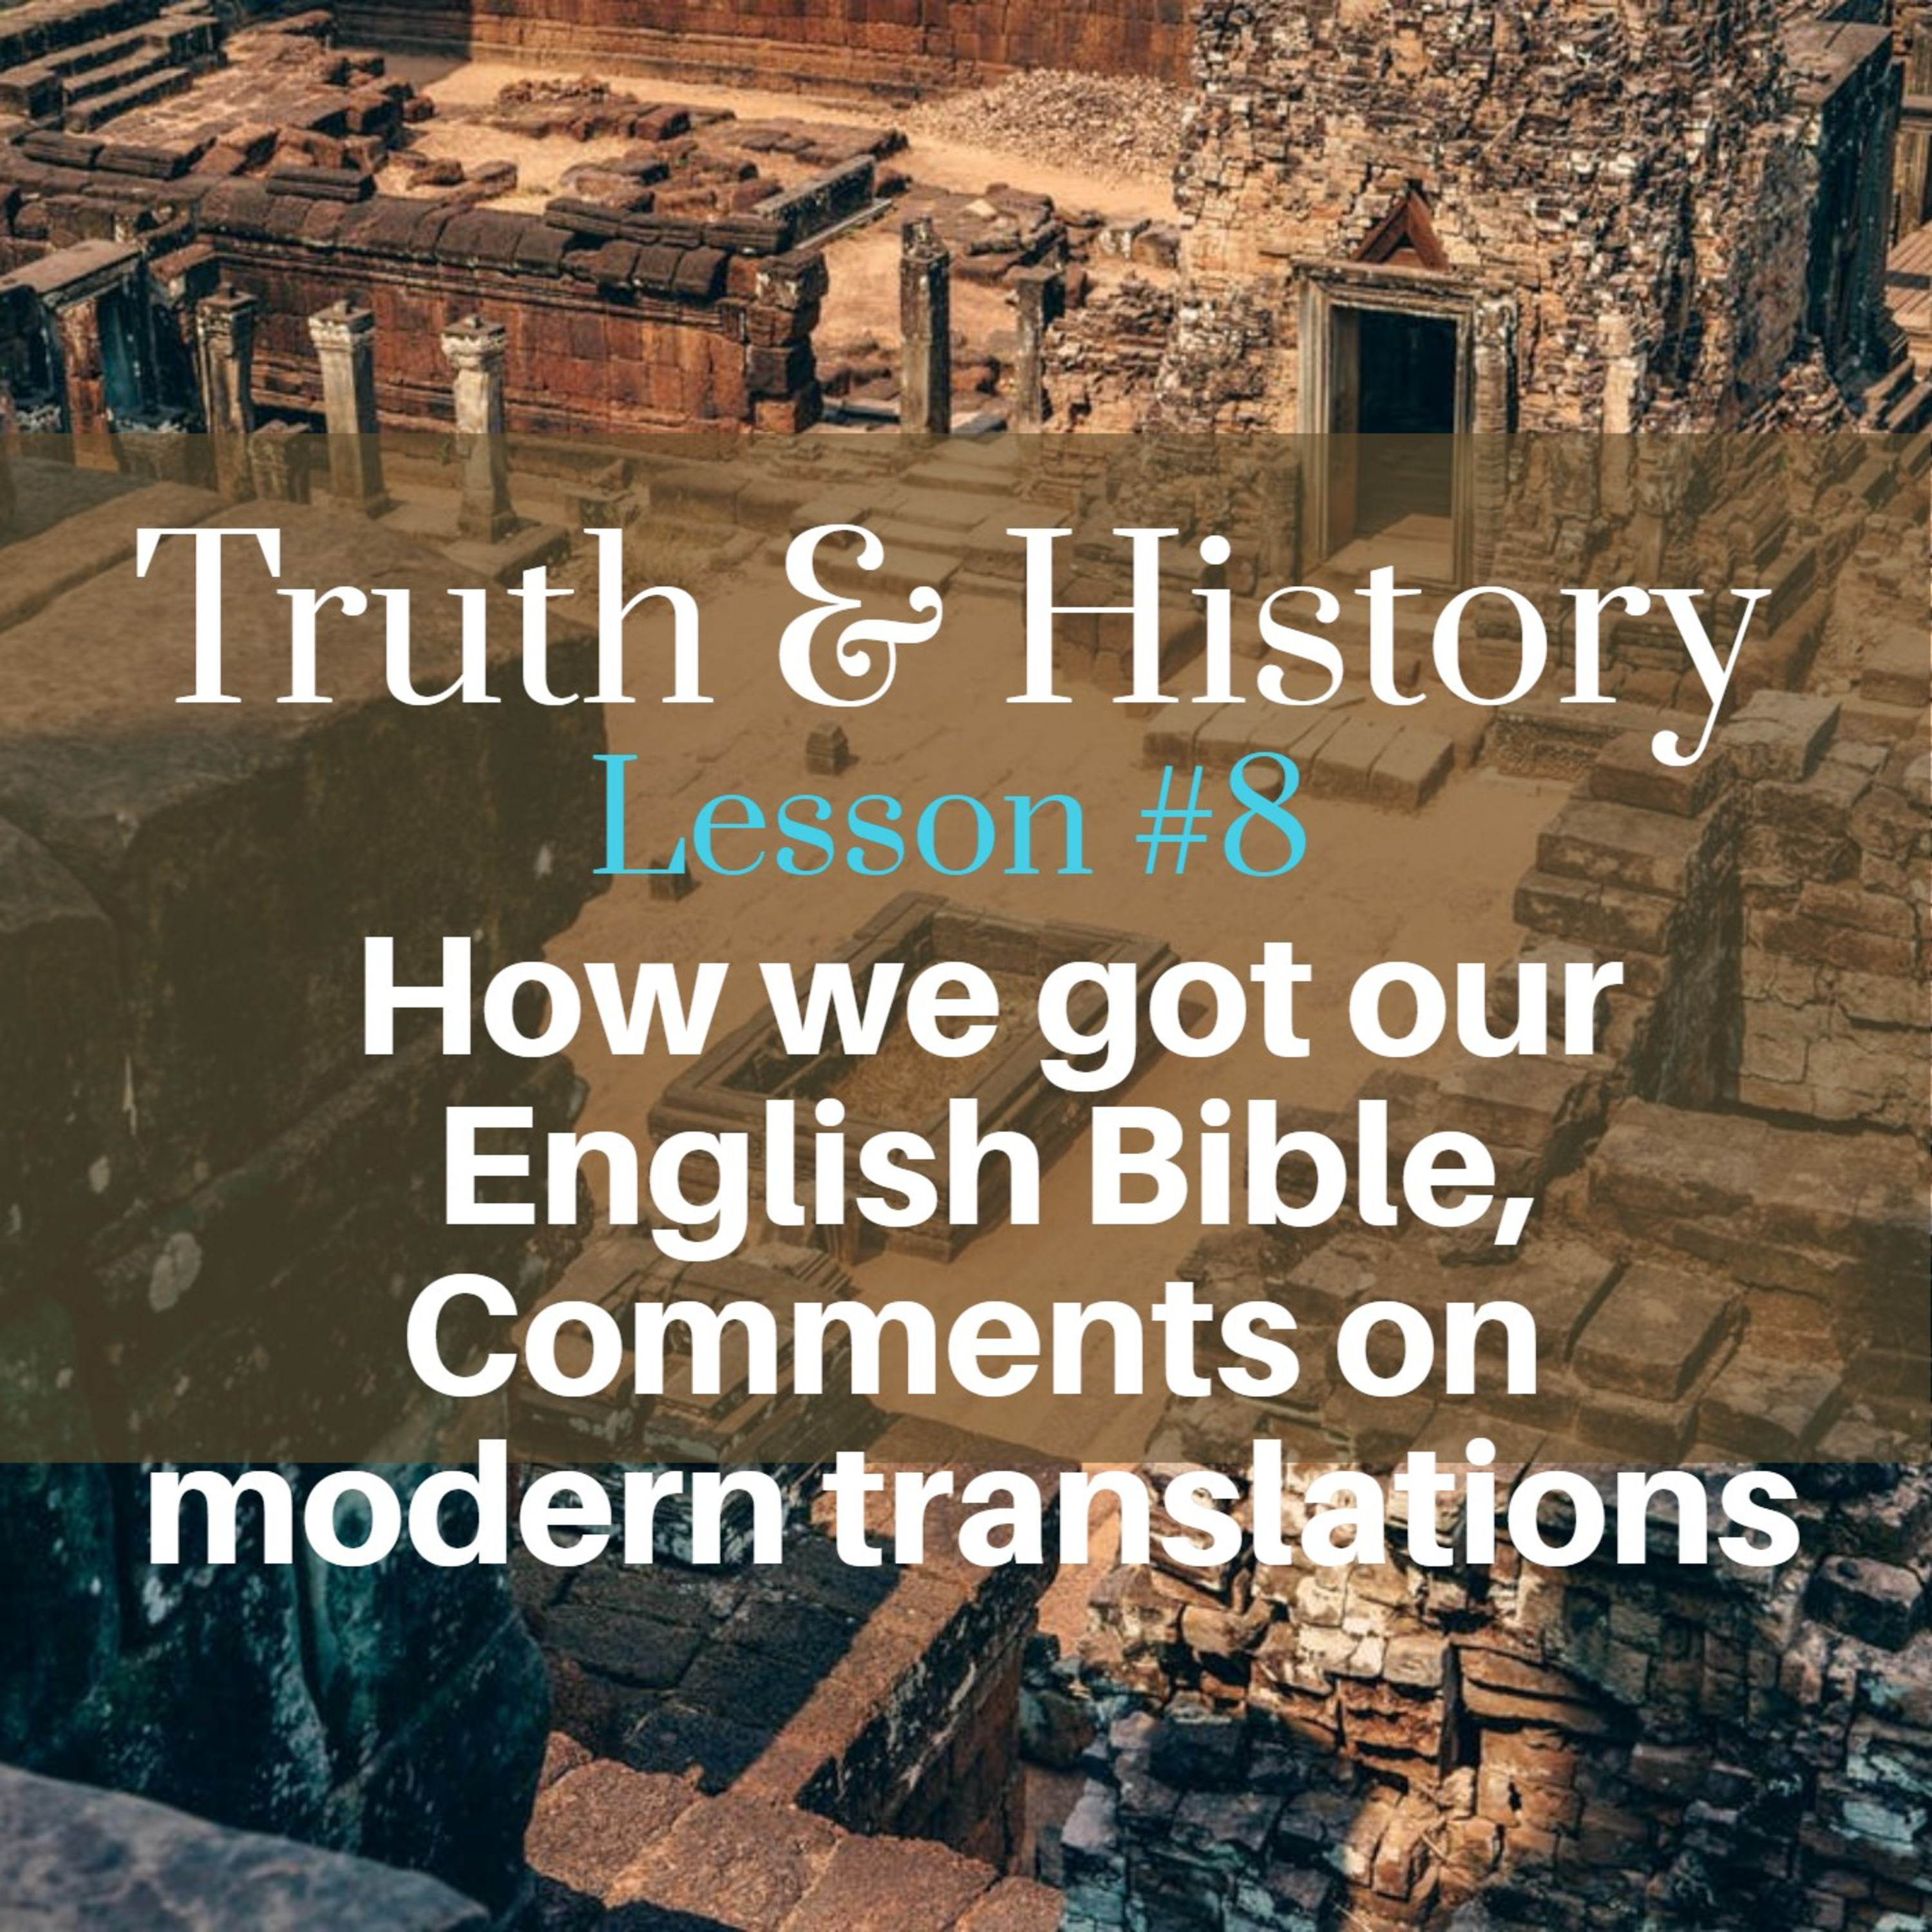 Truth and History, Lesson Eight: How we got our English Bible, plus comments on modern translations